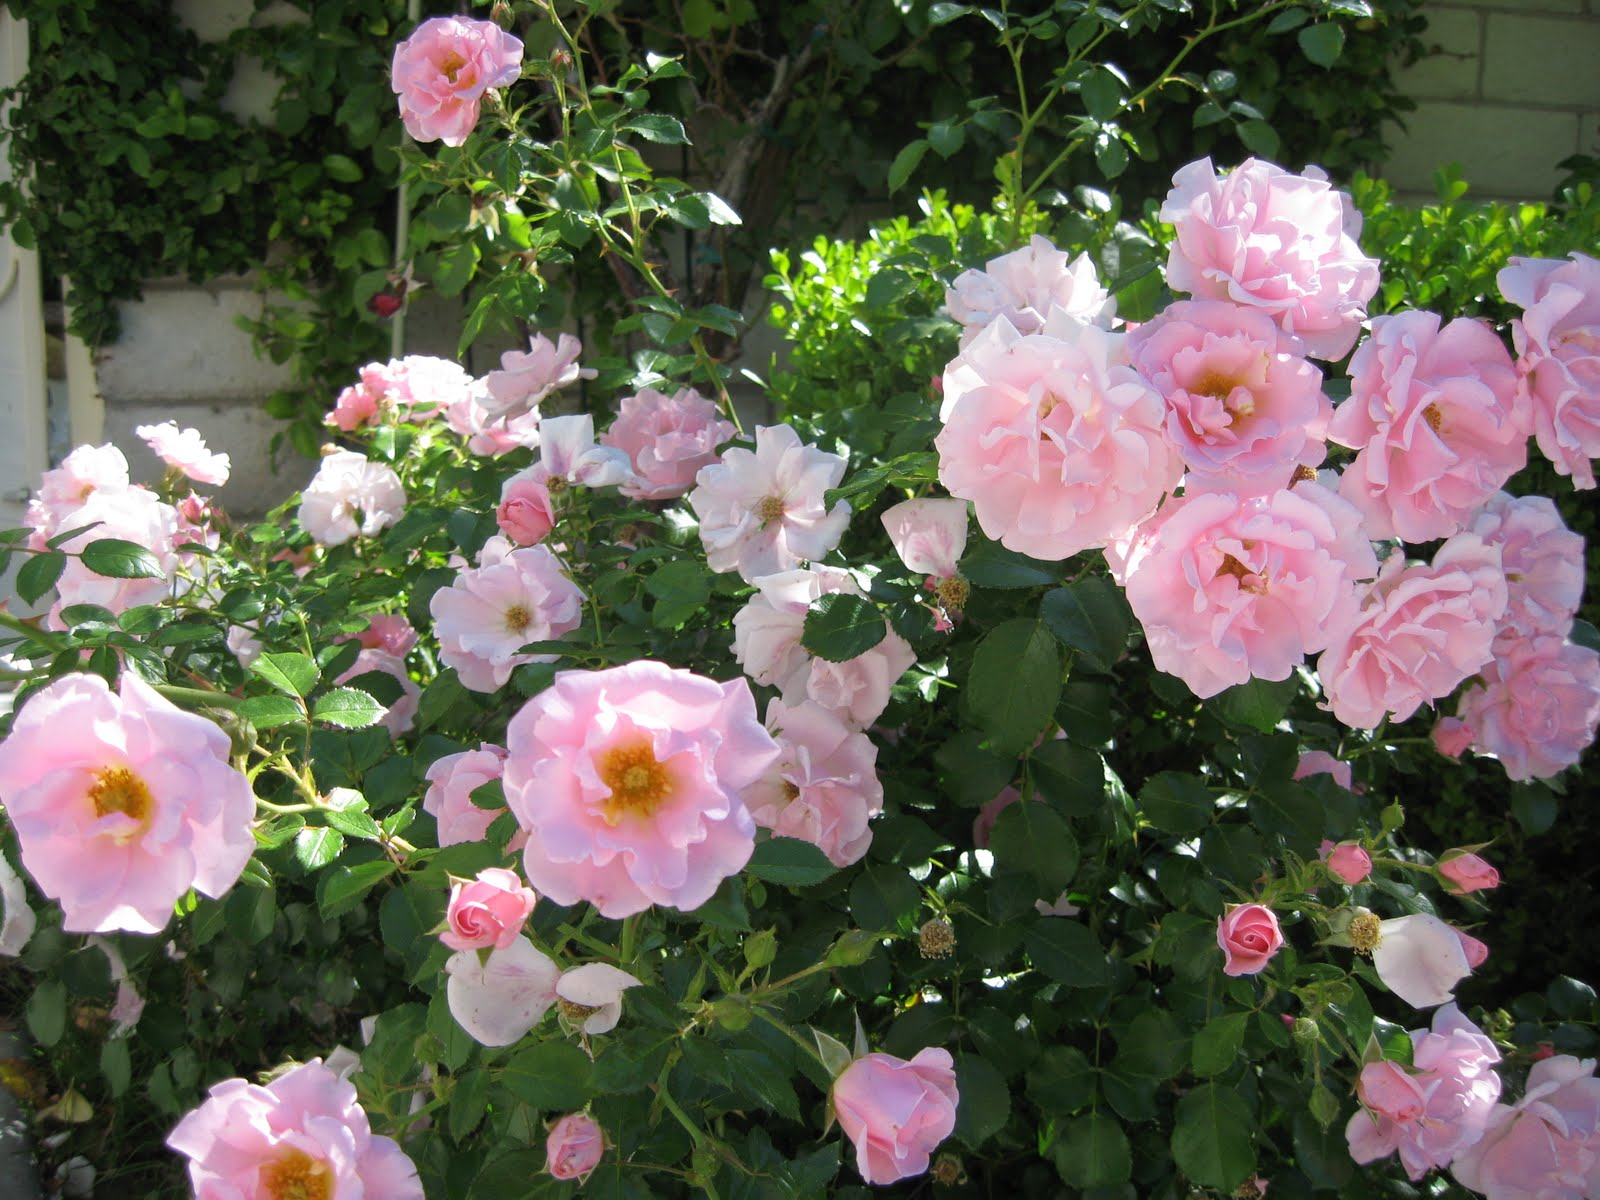 Roses garden wendys hat i have many precious pink carpet roses that spread across the ground dhlflorist Image collections